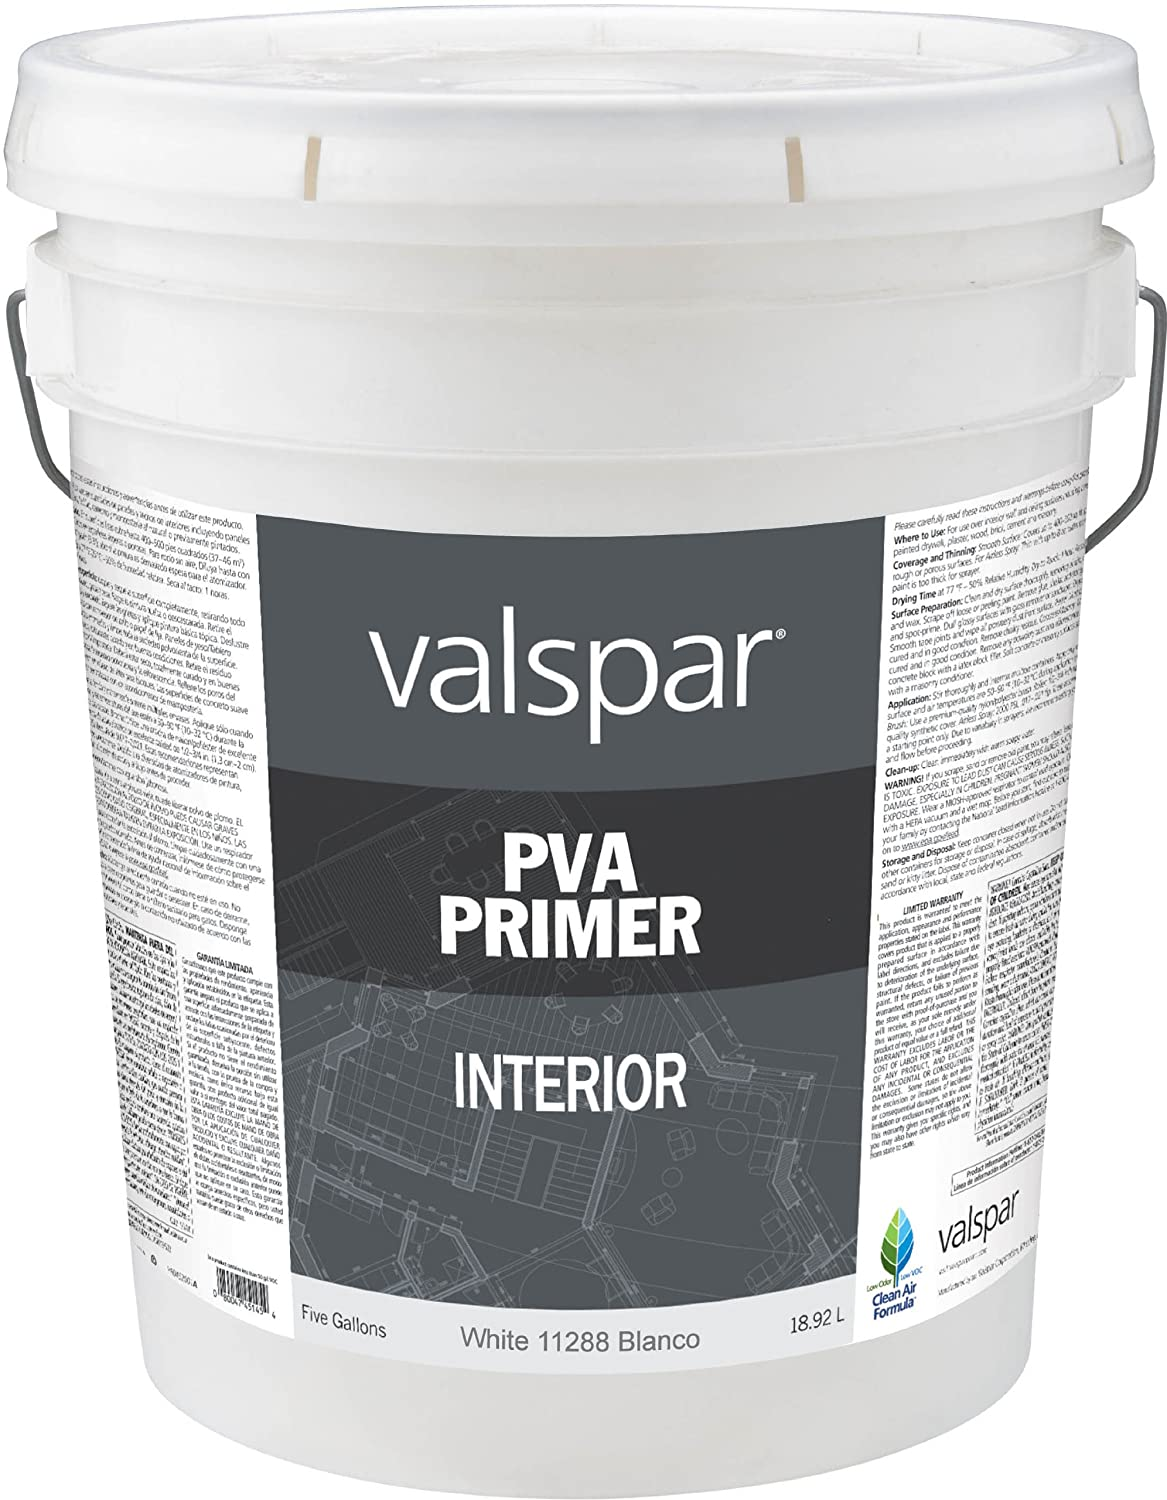 Best Valspar Paint Reviews Interior Gallery Amazing Interior